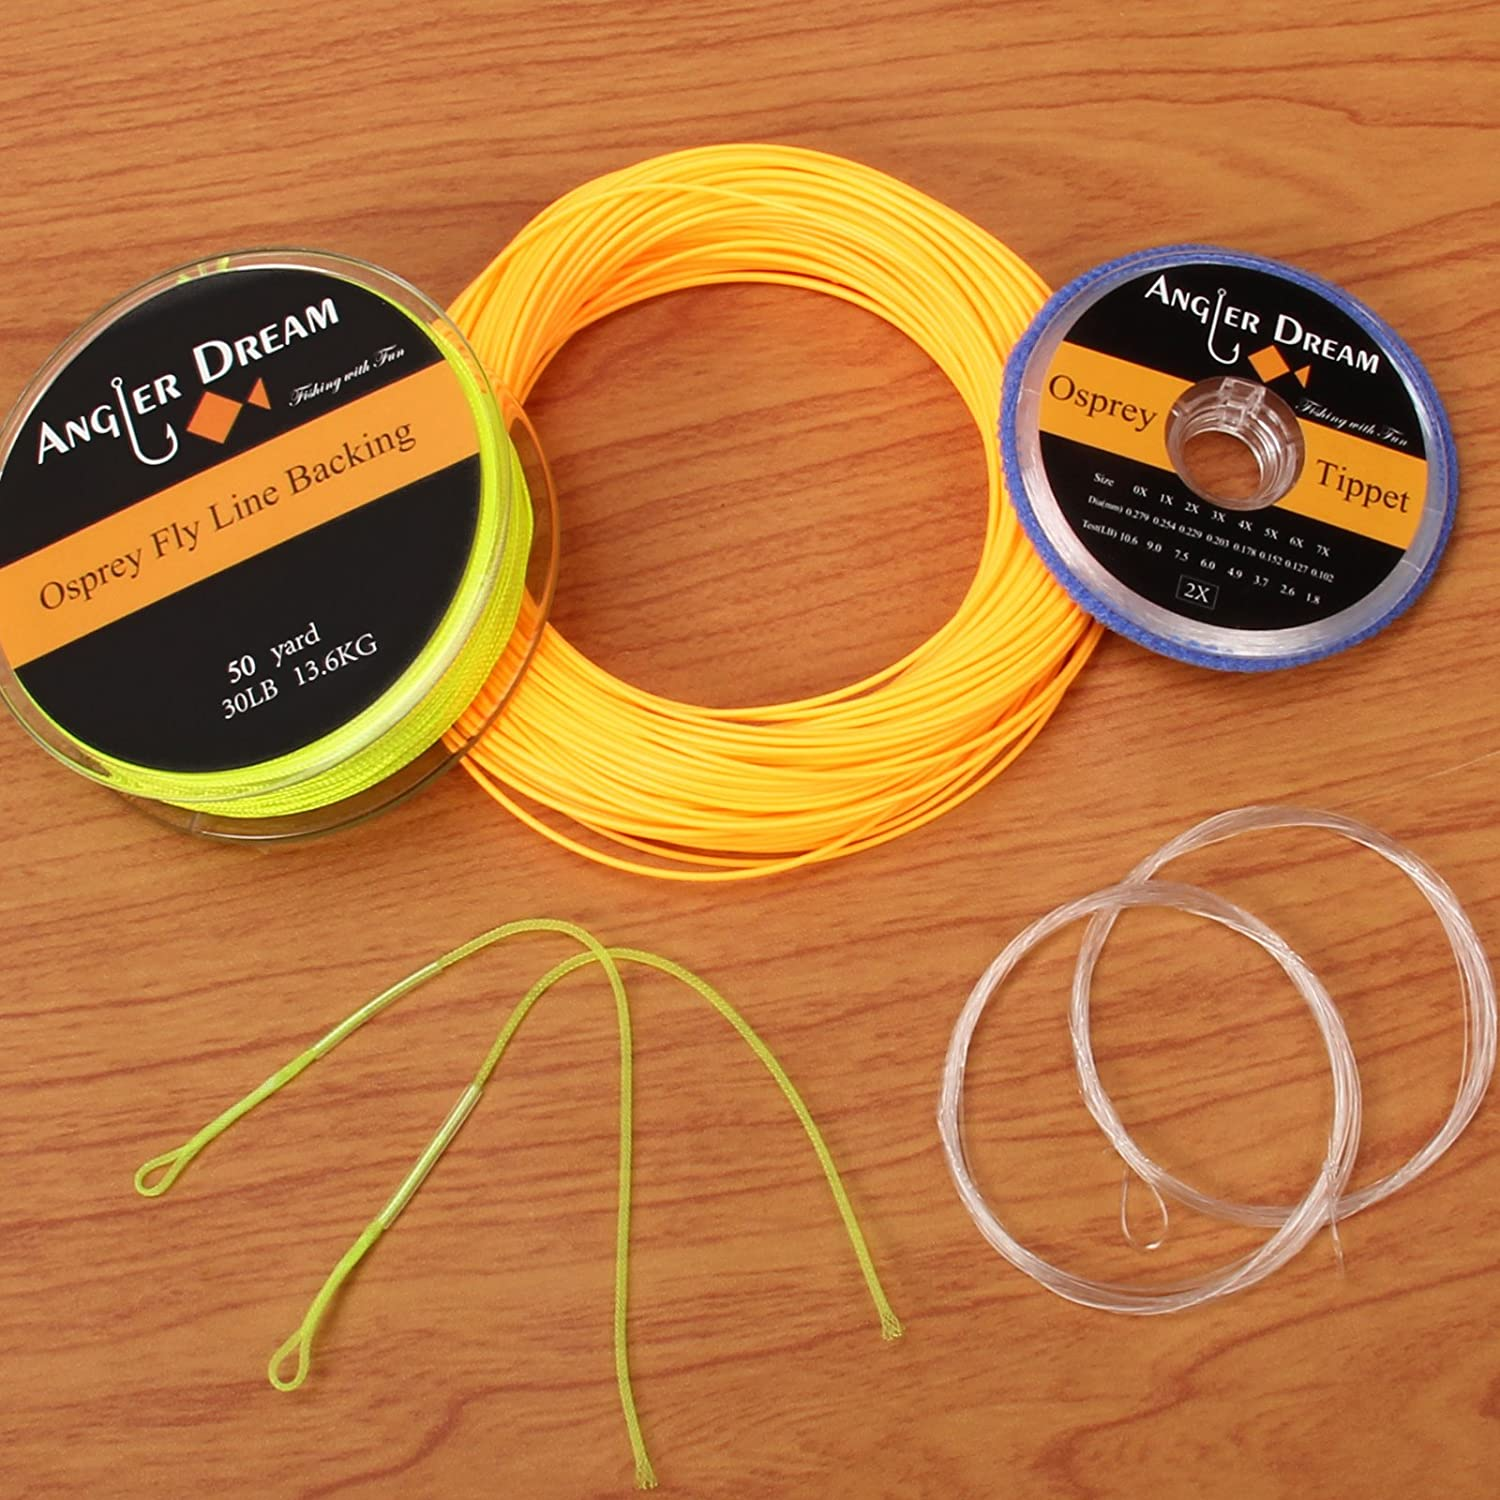 ANGLER DREAM AnglerDream WF Fly Fishing Line Kit 1 2 3 4 5 6 7 8 9WT Fly Fishing Line Leader Braided Backing Fish Line